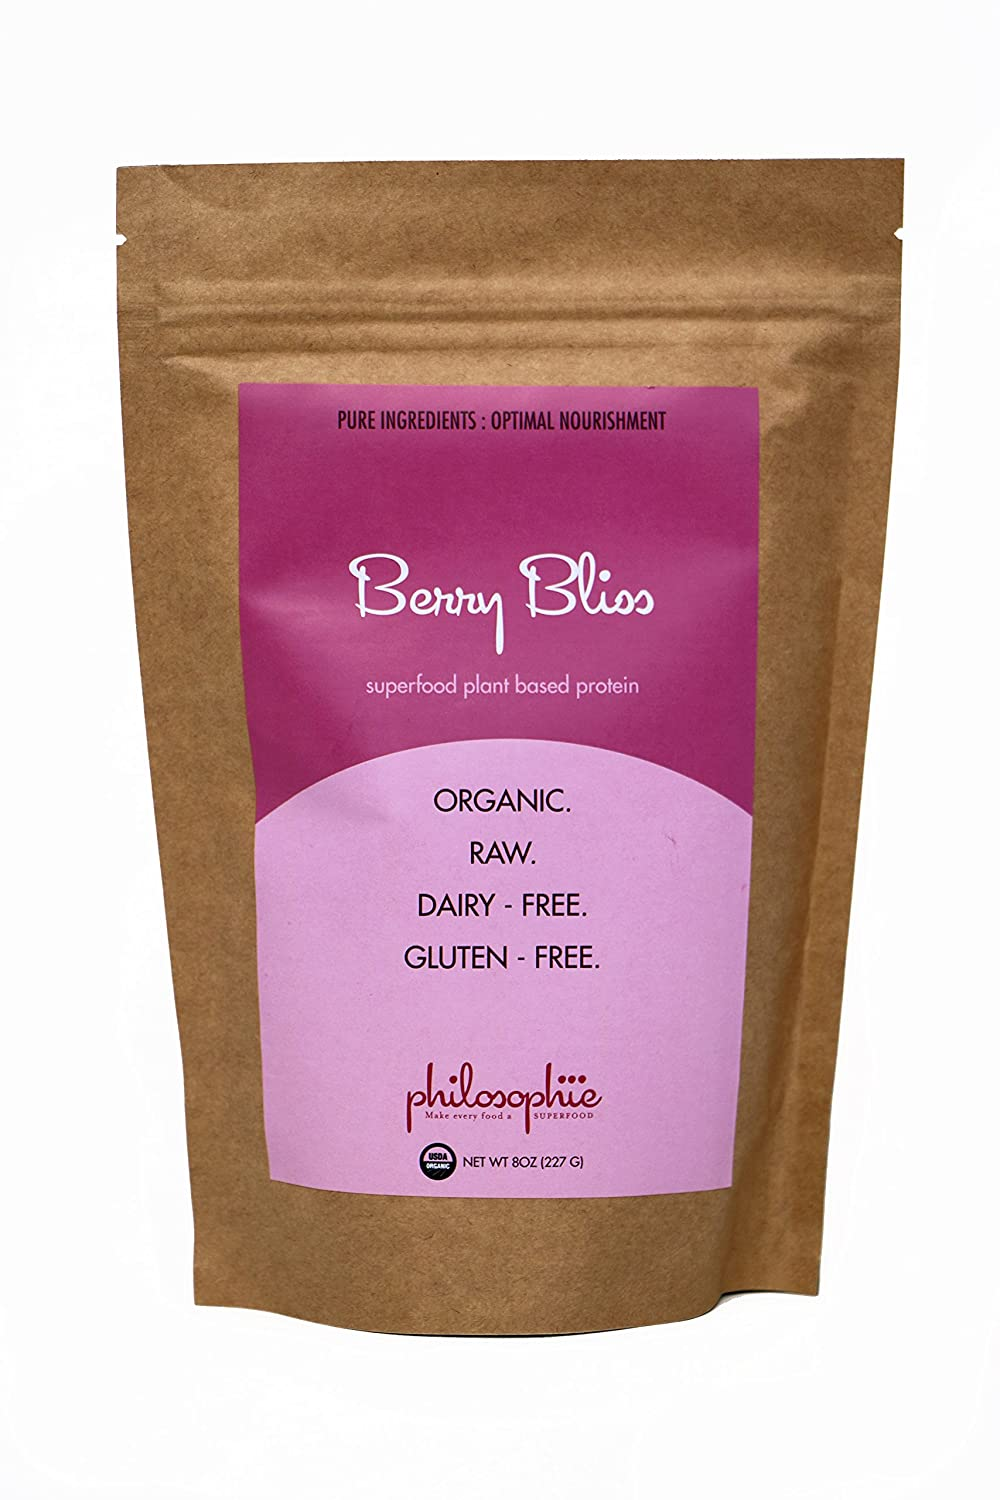 Philosophie Berry Bliss Superfood Protein Powder – Vegan Protein Powder – 8 oz – Natural, Caffeine Free Boost of Energy, Low Carb Superfood, Sustained Release For Daily Balance